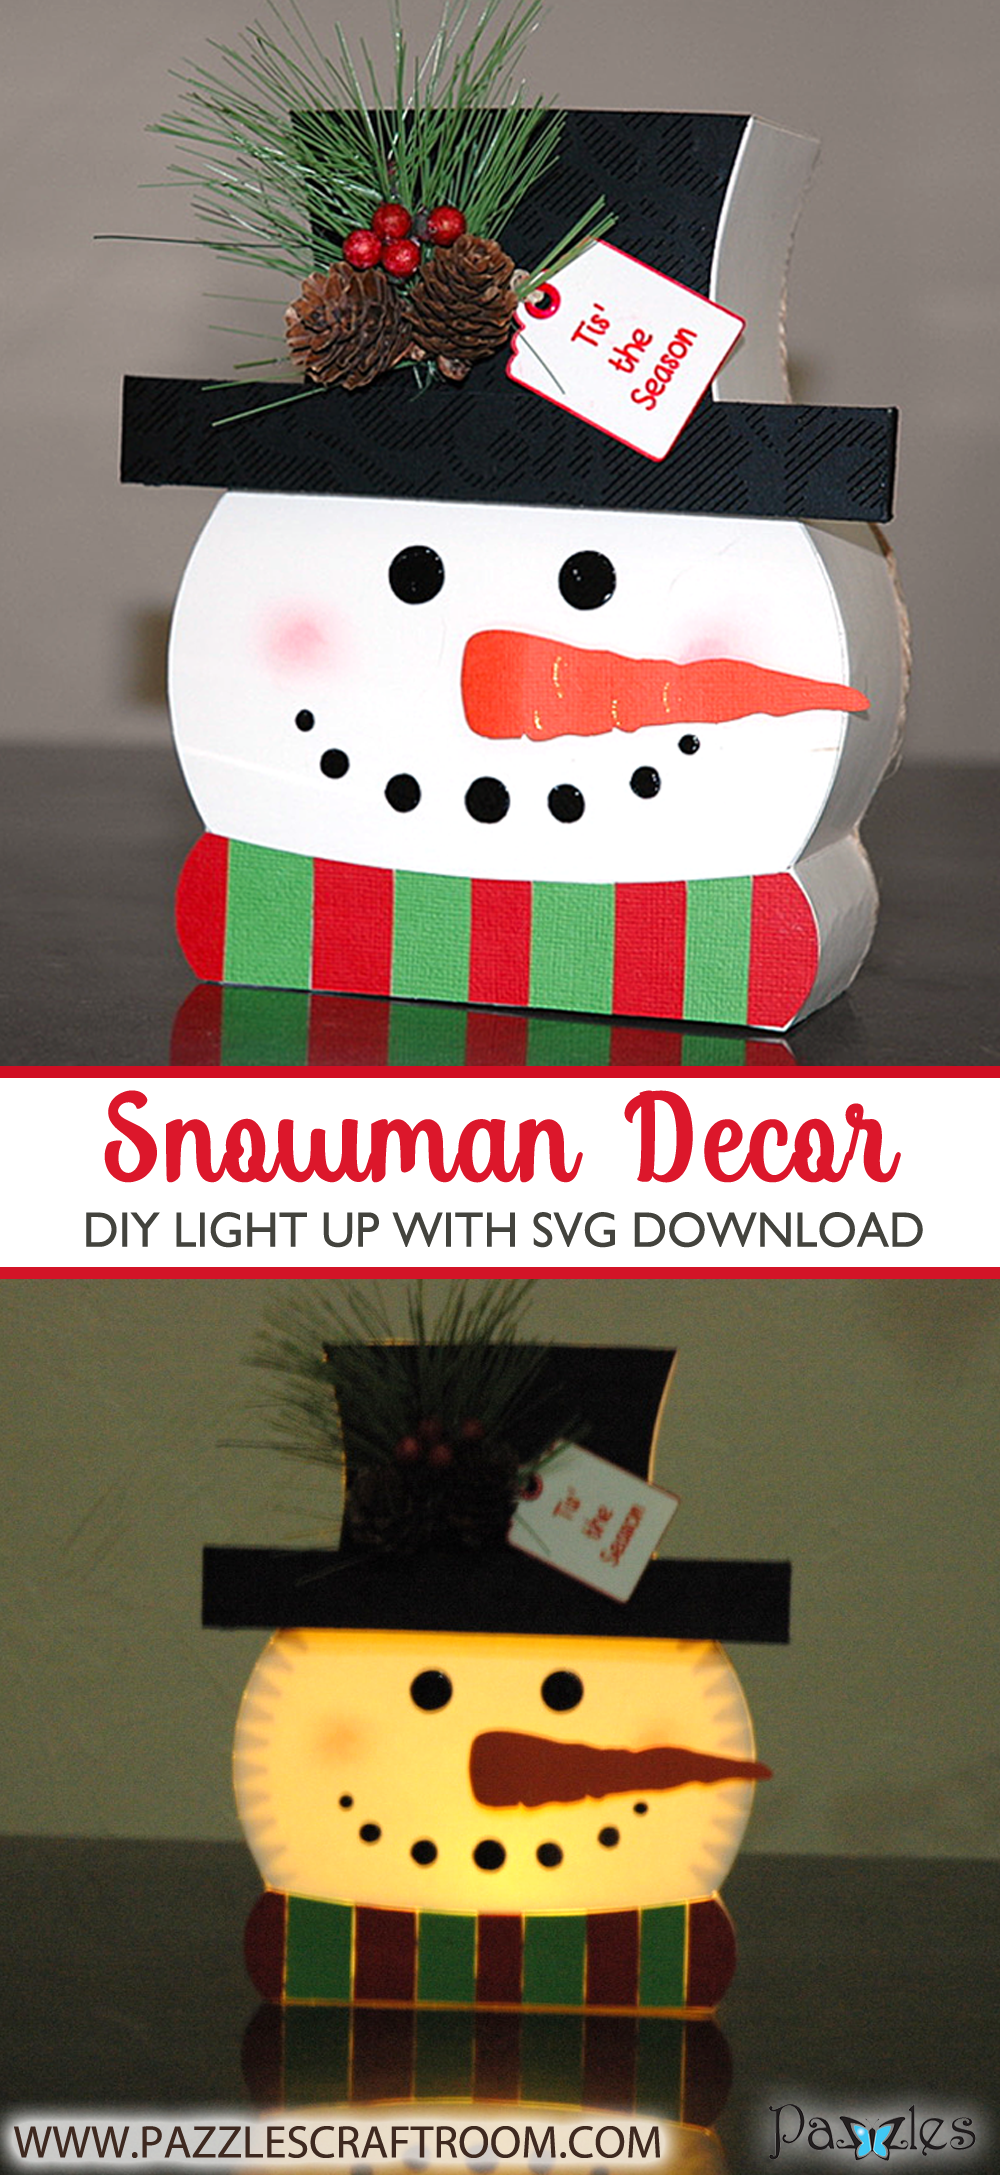 Light Up DIY Snowman Decoration with instant SVG download